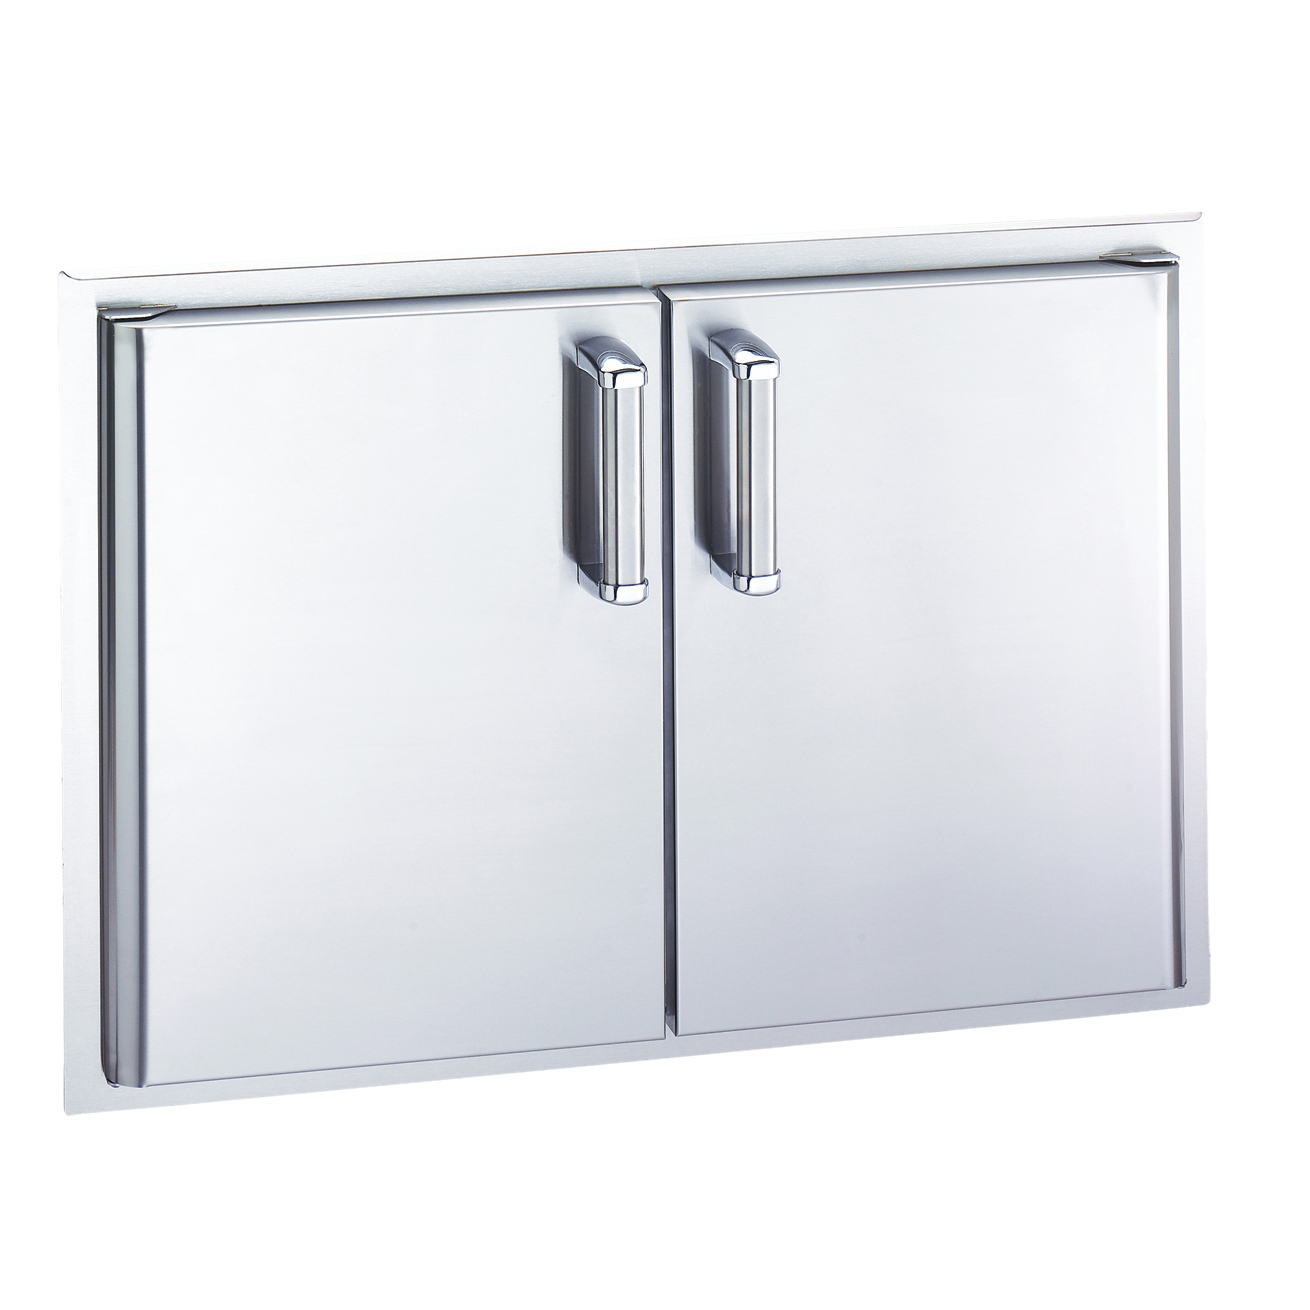 Stainless Access Doors : Fire magic inch stainless steel double access door